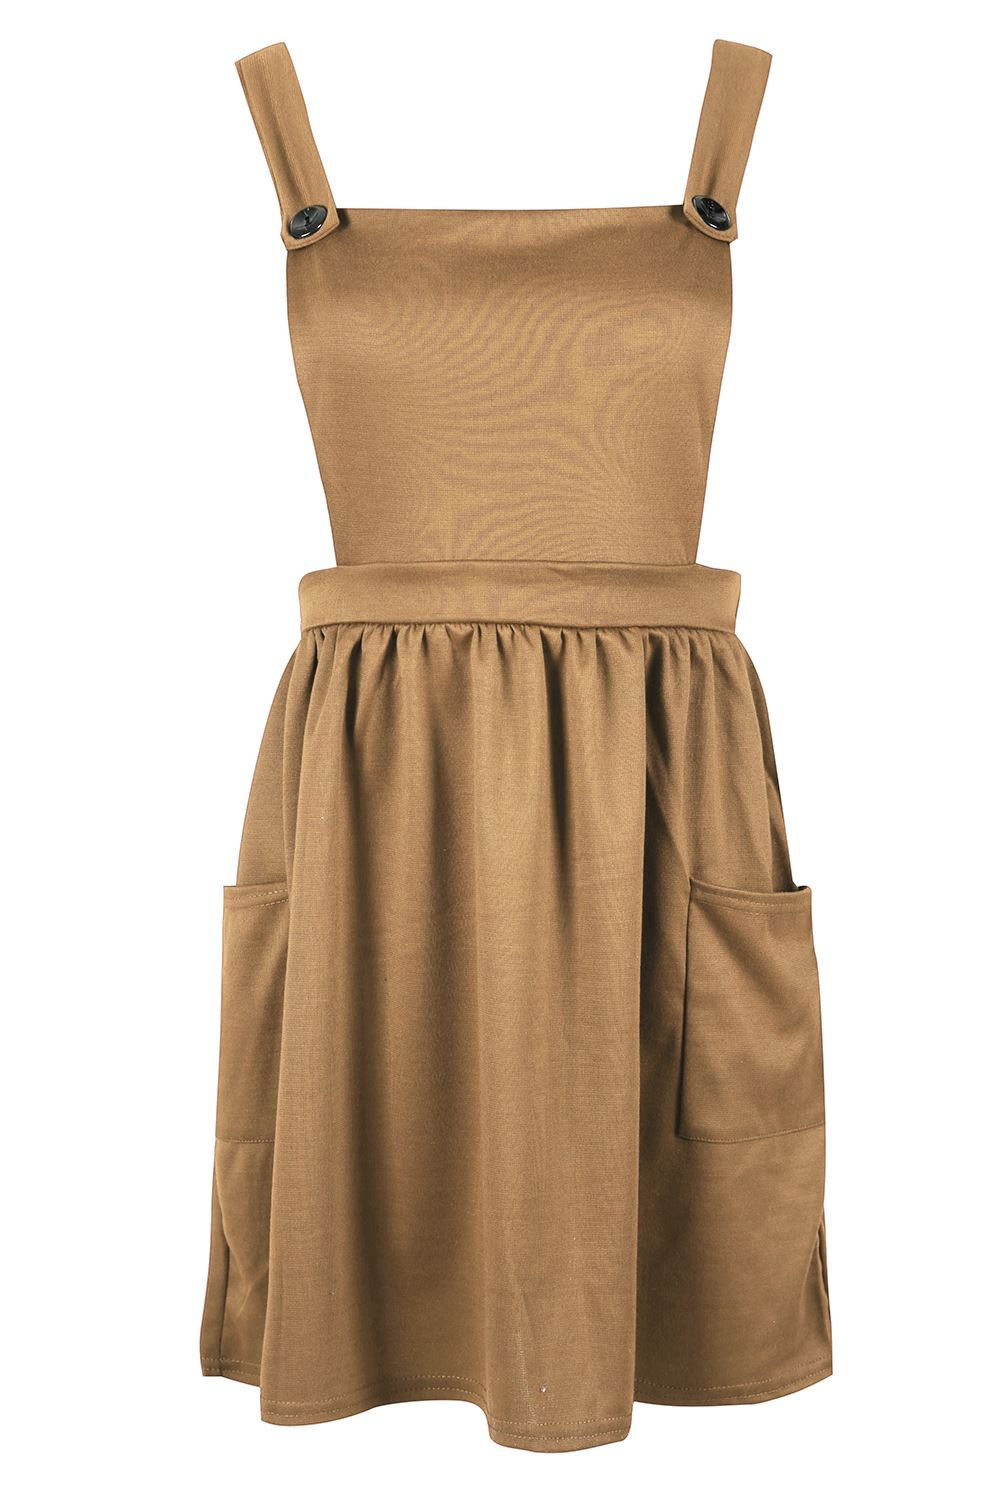 Womens-Ladies-Dungarees-Pinafore-Cross-Back-Strappy-Skater-Flared-Dress-Playsuit thumbnail 9